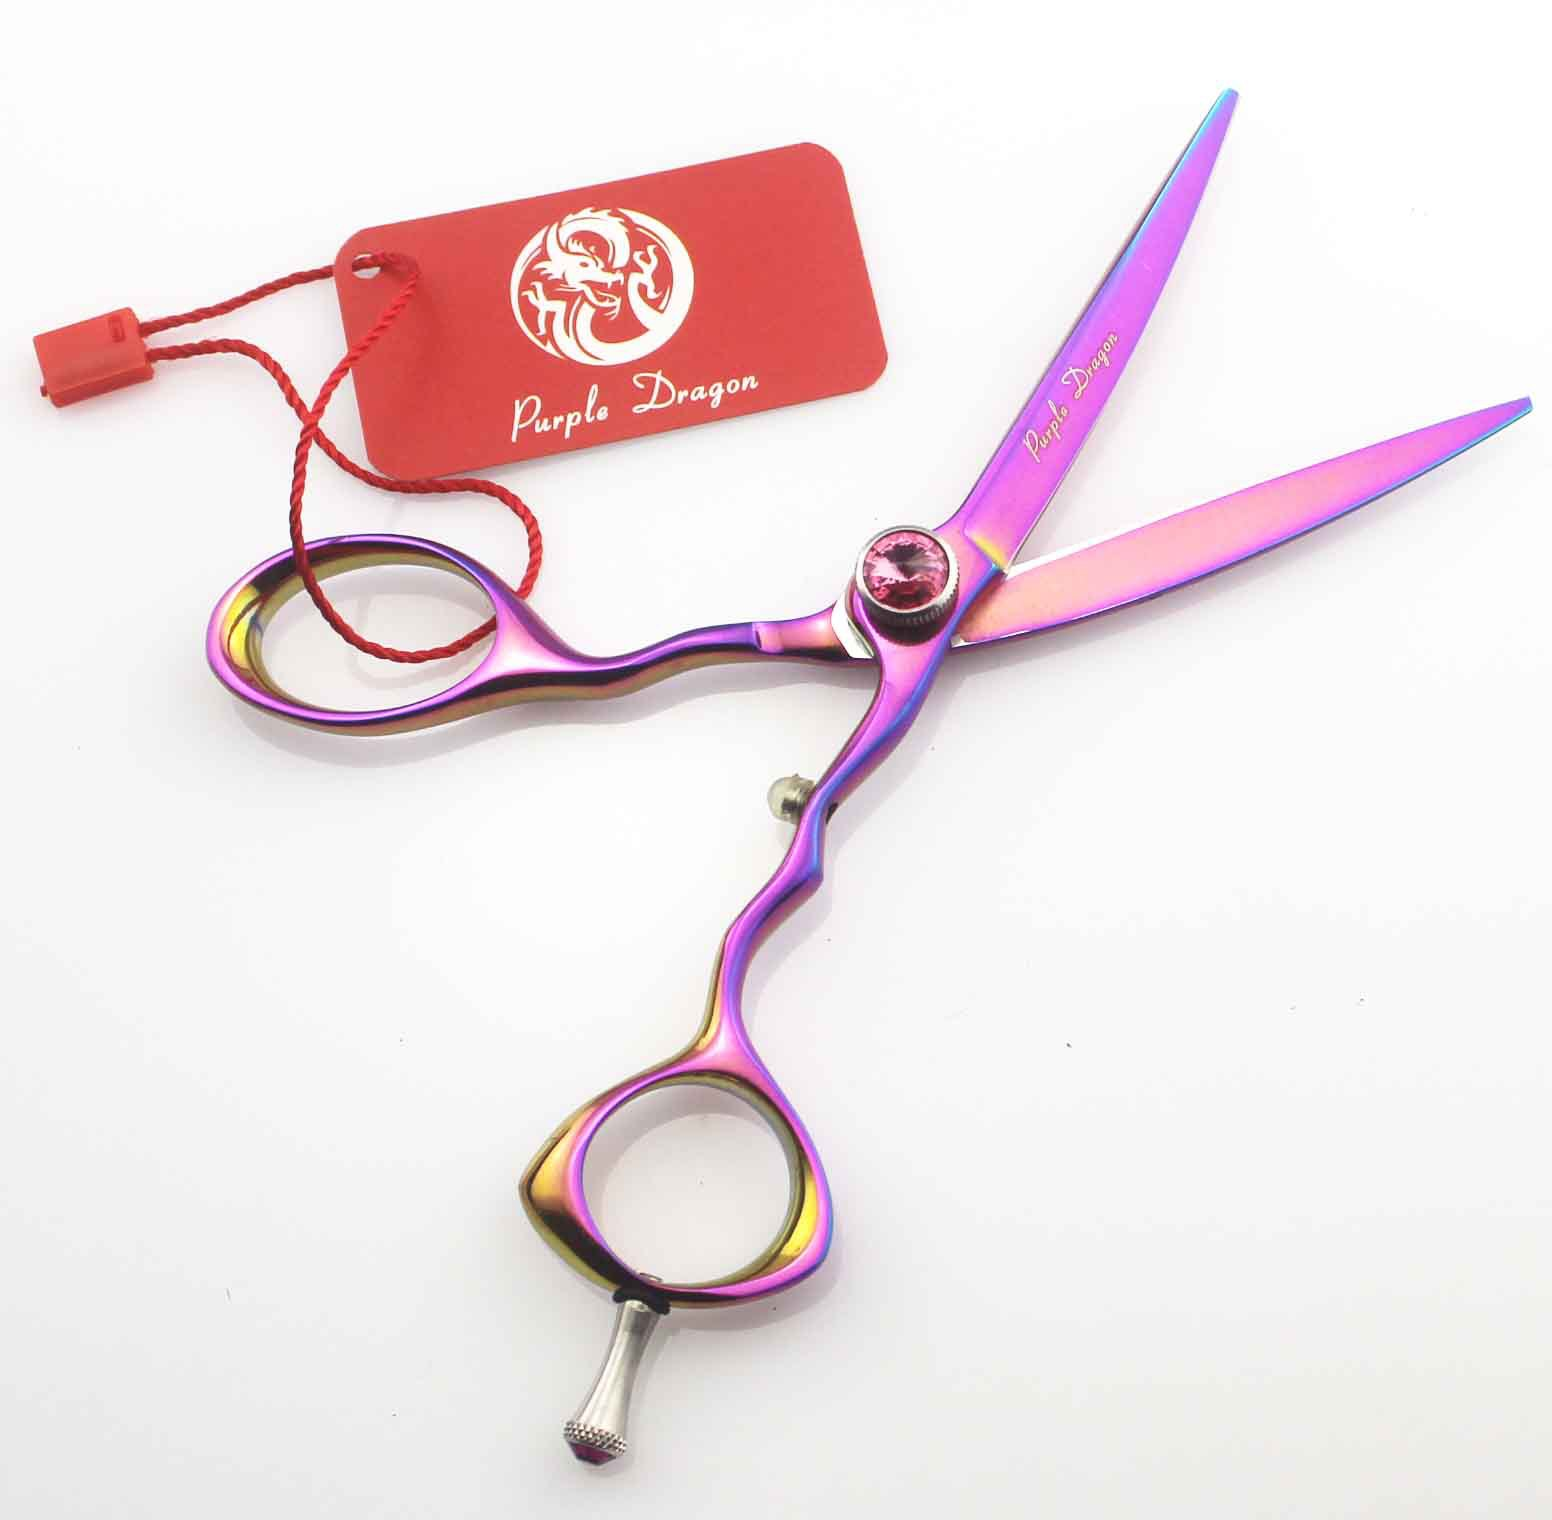 5.5 inch  Professional Hairdressing Scissors Hair Cutting 5.5 inch  Professional Hairdressing Scissors Hair Cutting